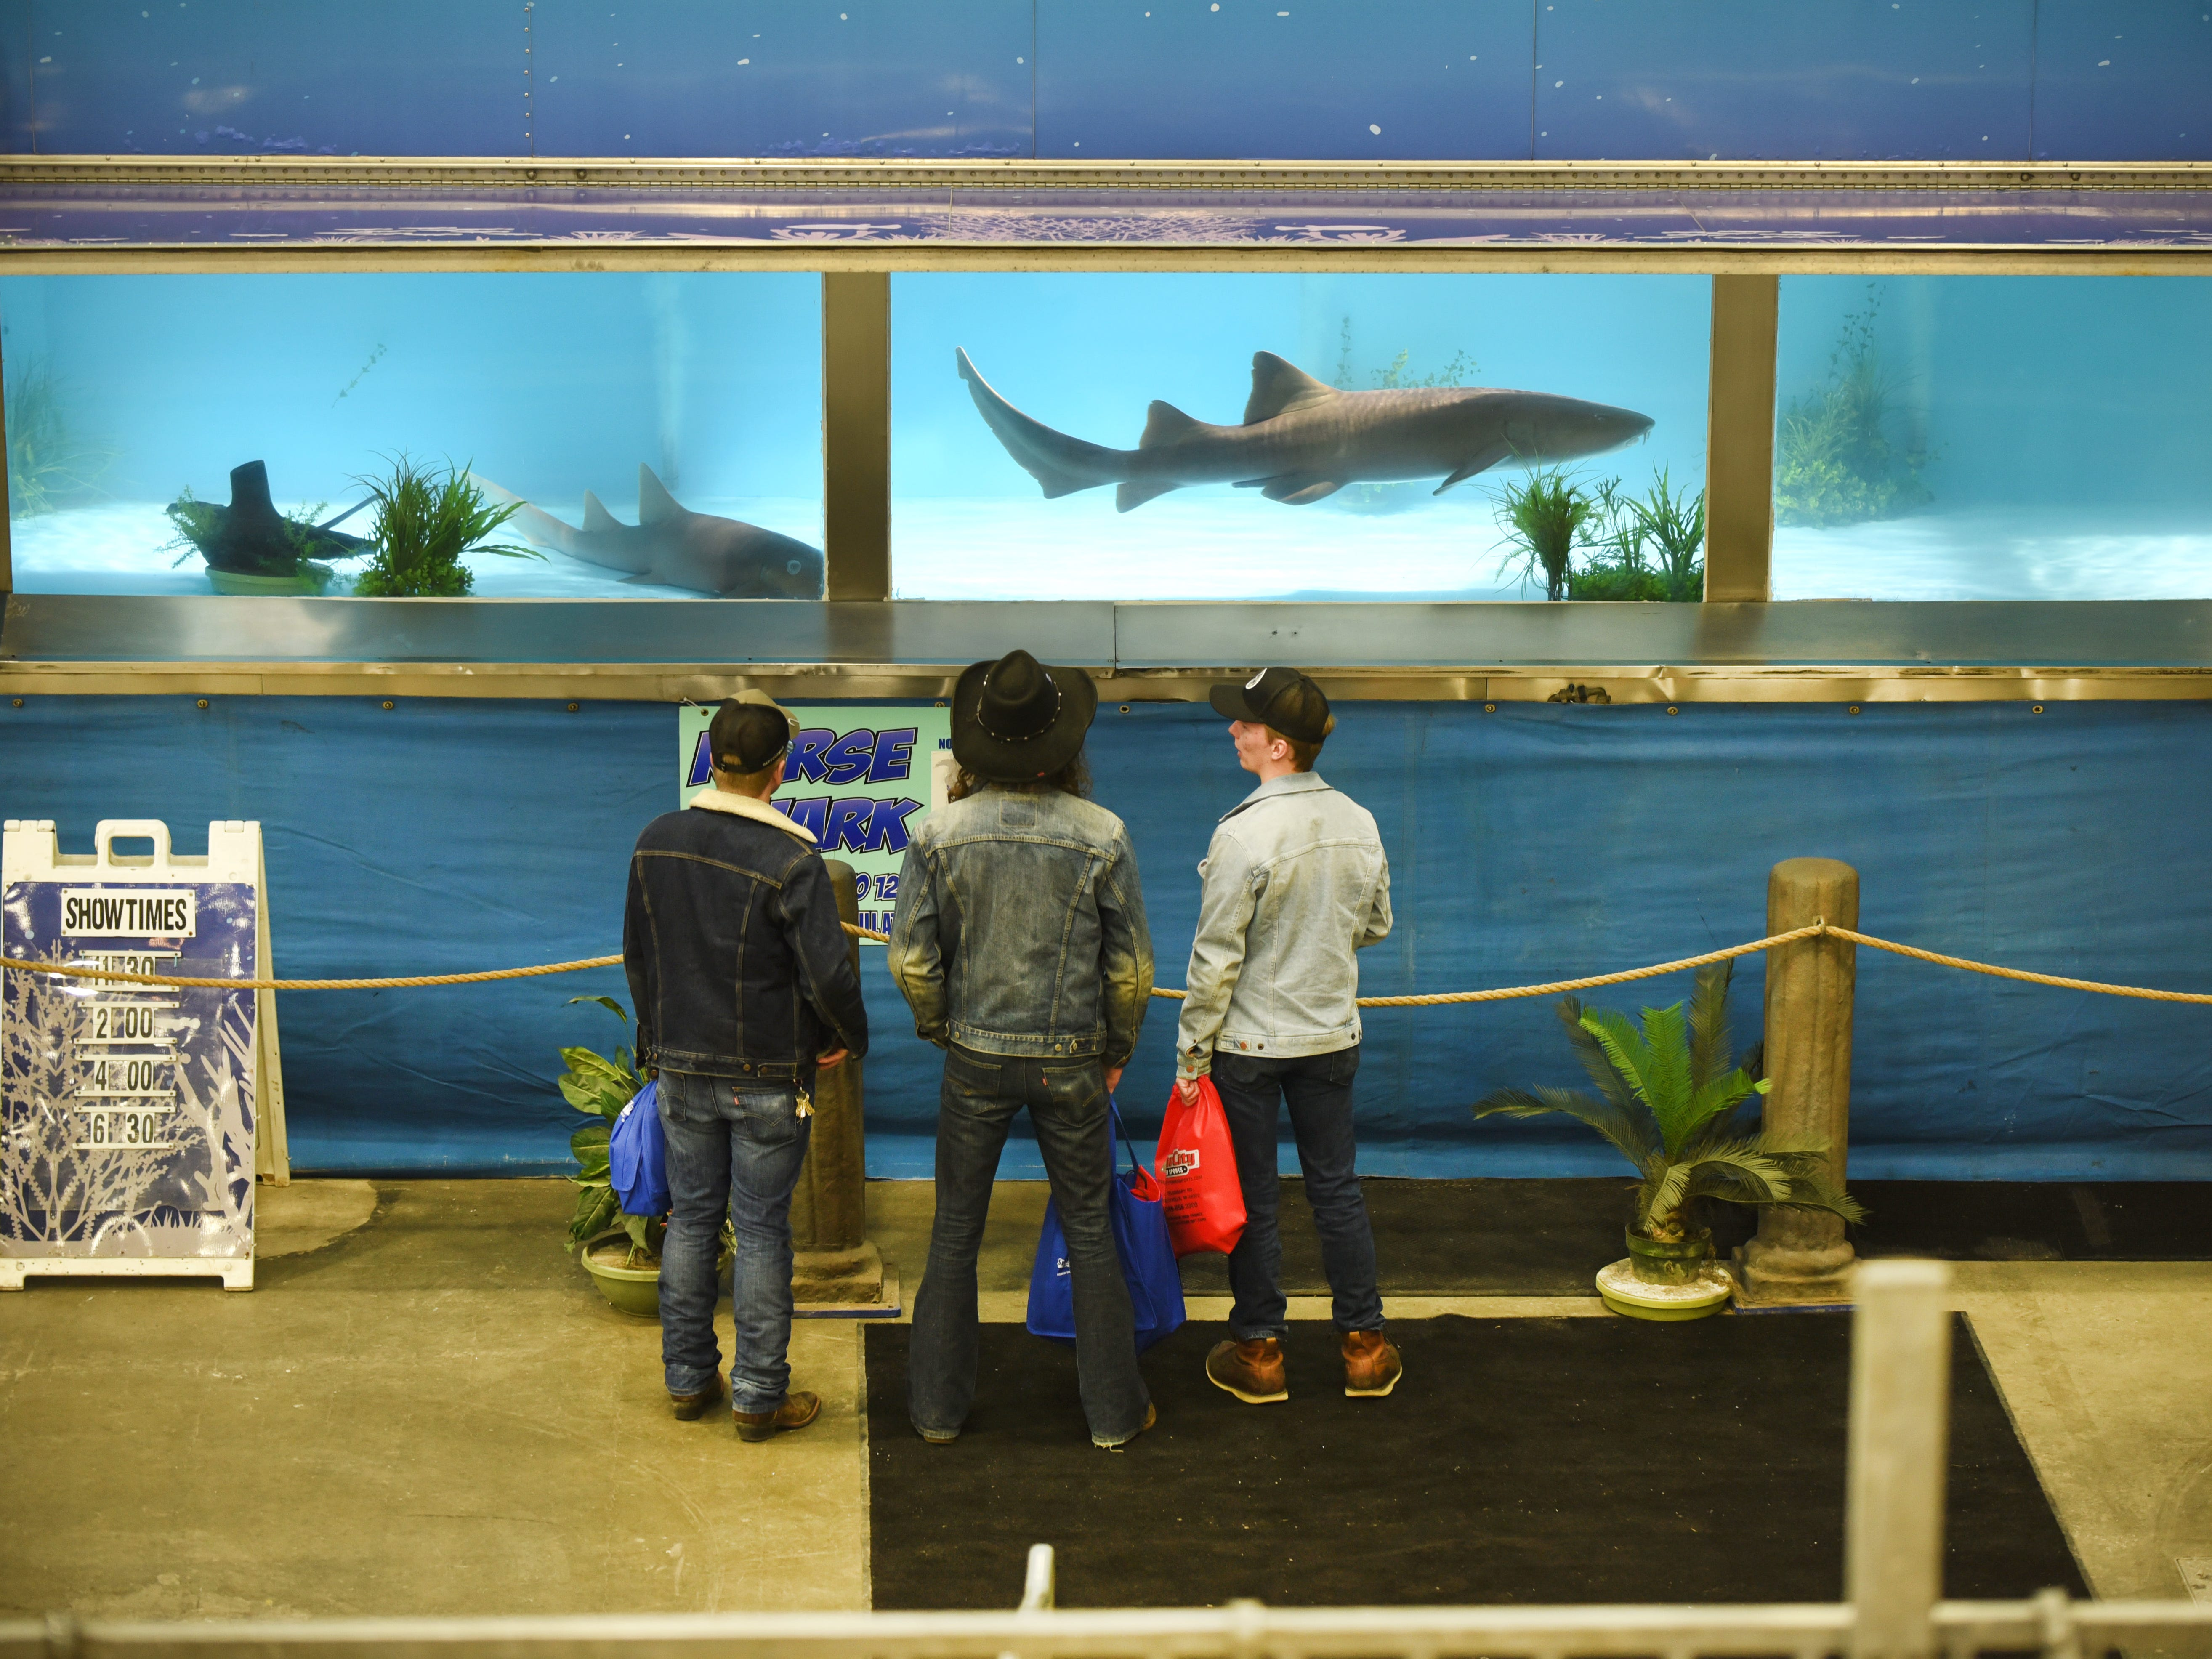 A Nurse shark is a crowd favorite the Detroit Boat Show at Cobo Center on Saturday, February 16, 2018.